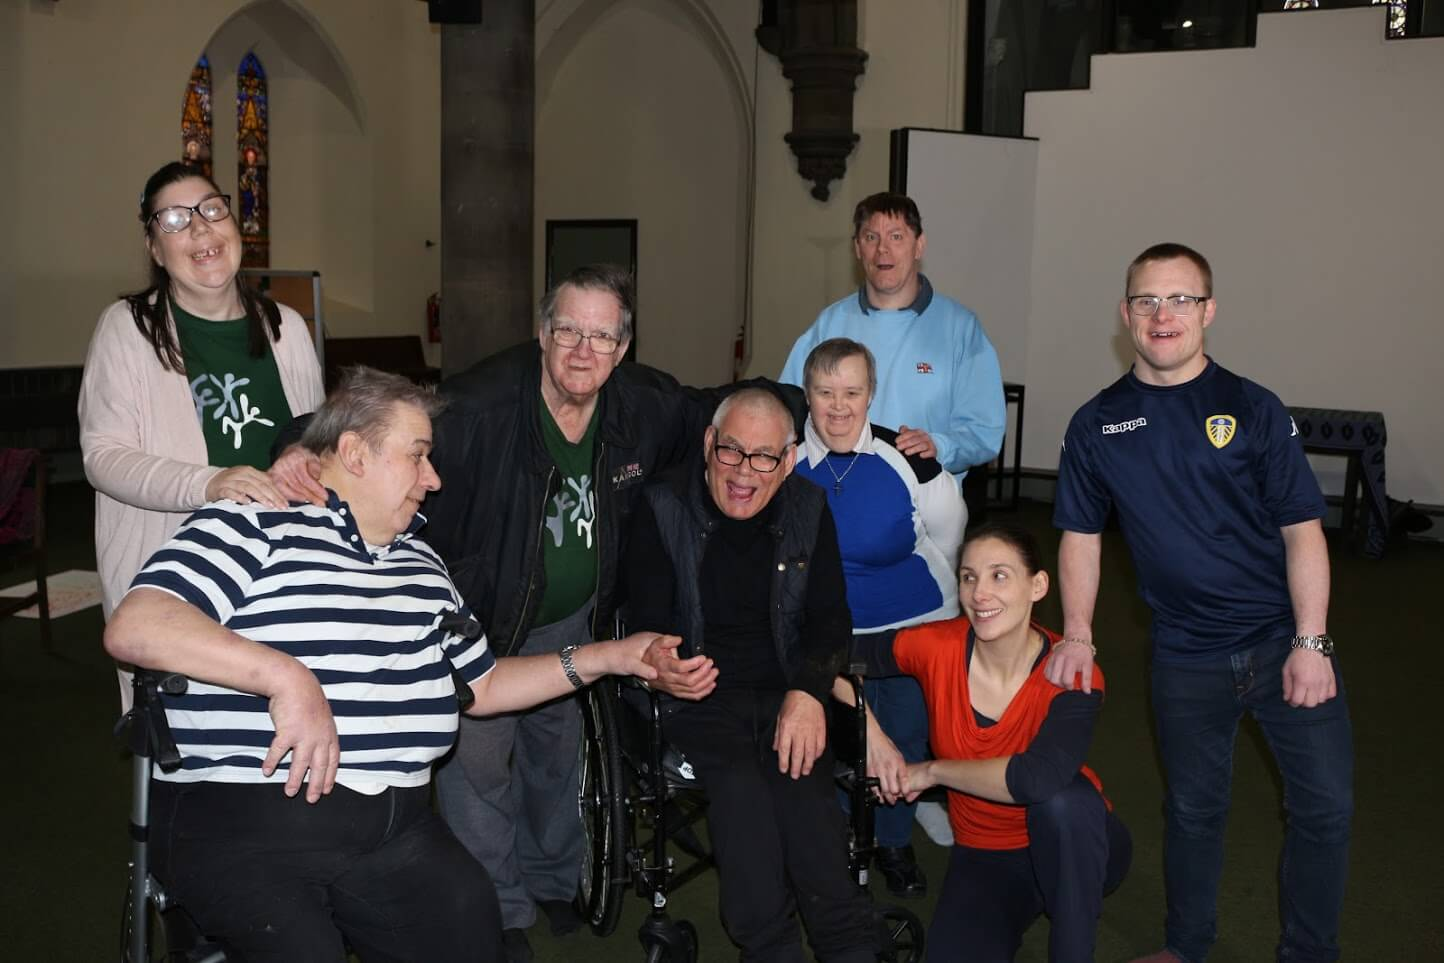 A group of people of varying ages and disabilities stand together inside a church and smile for the camera.